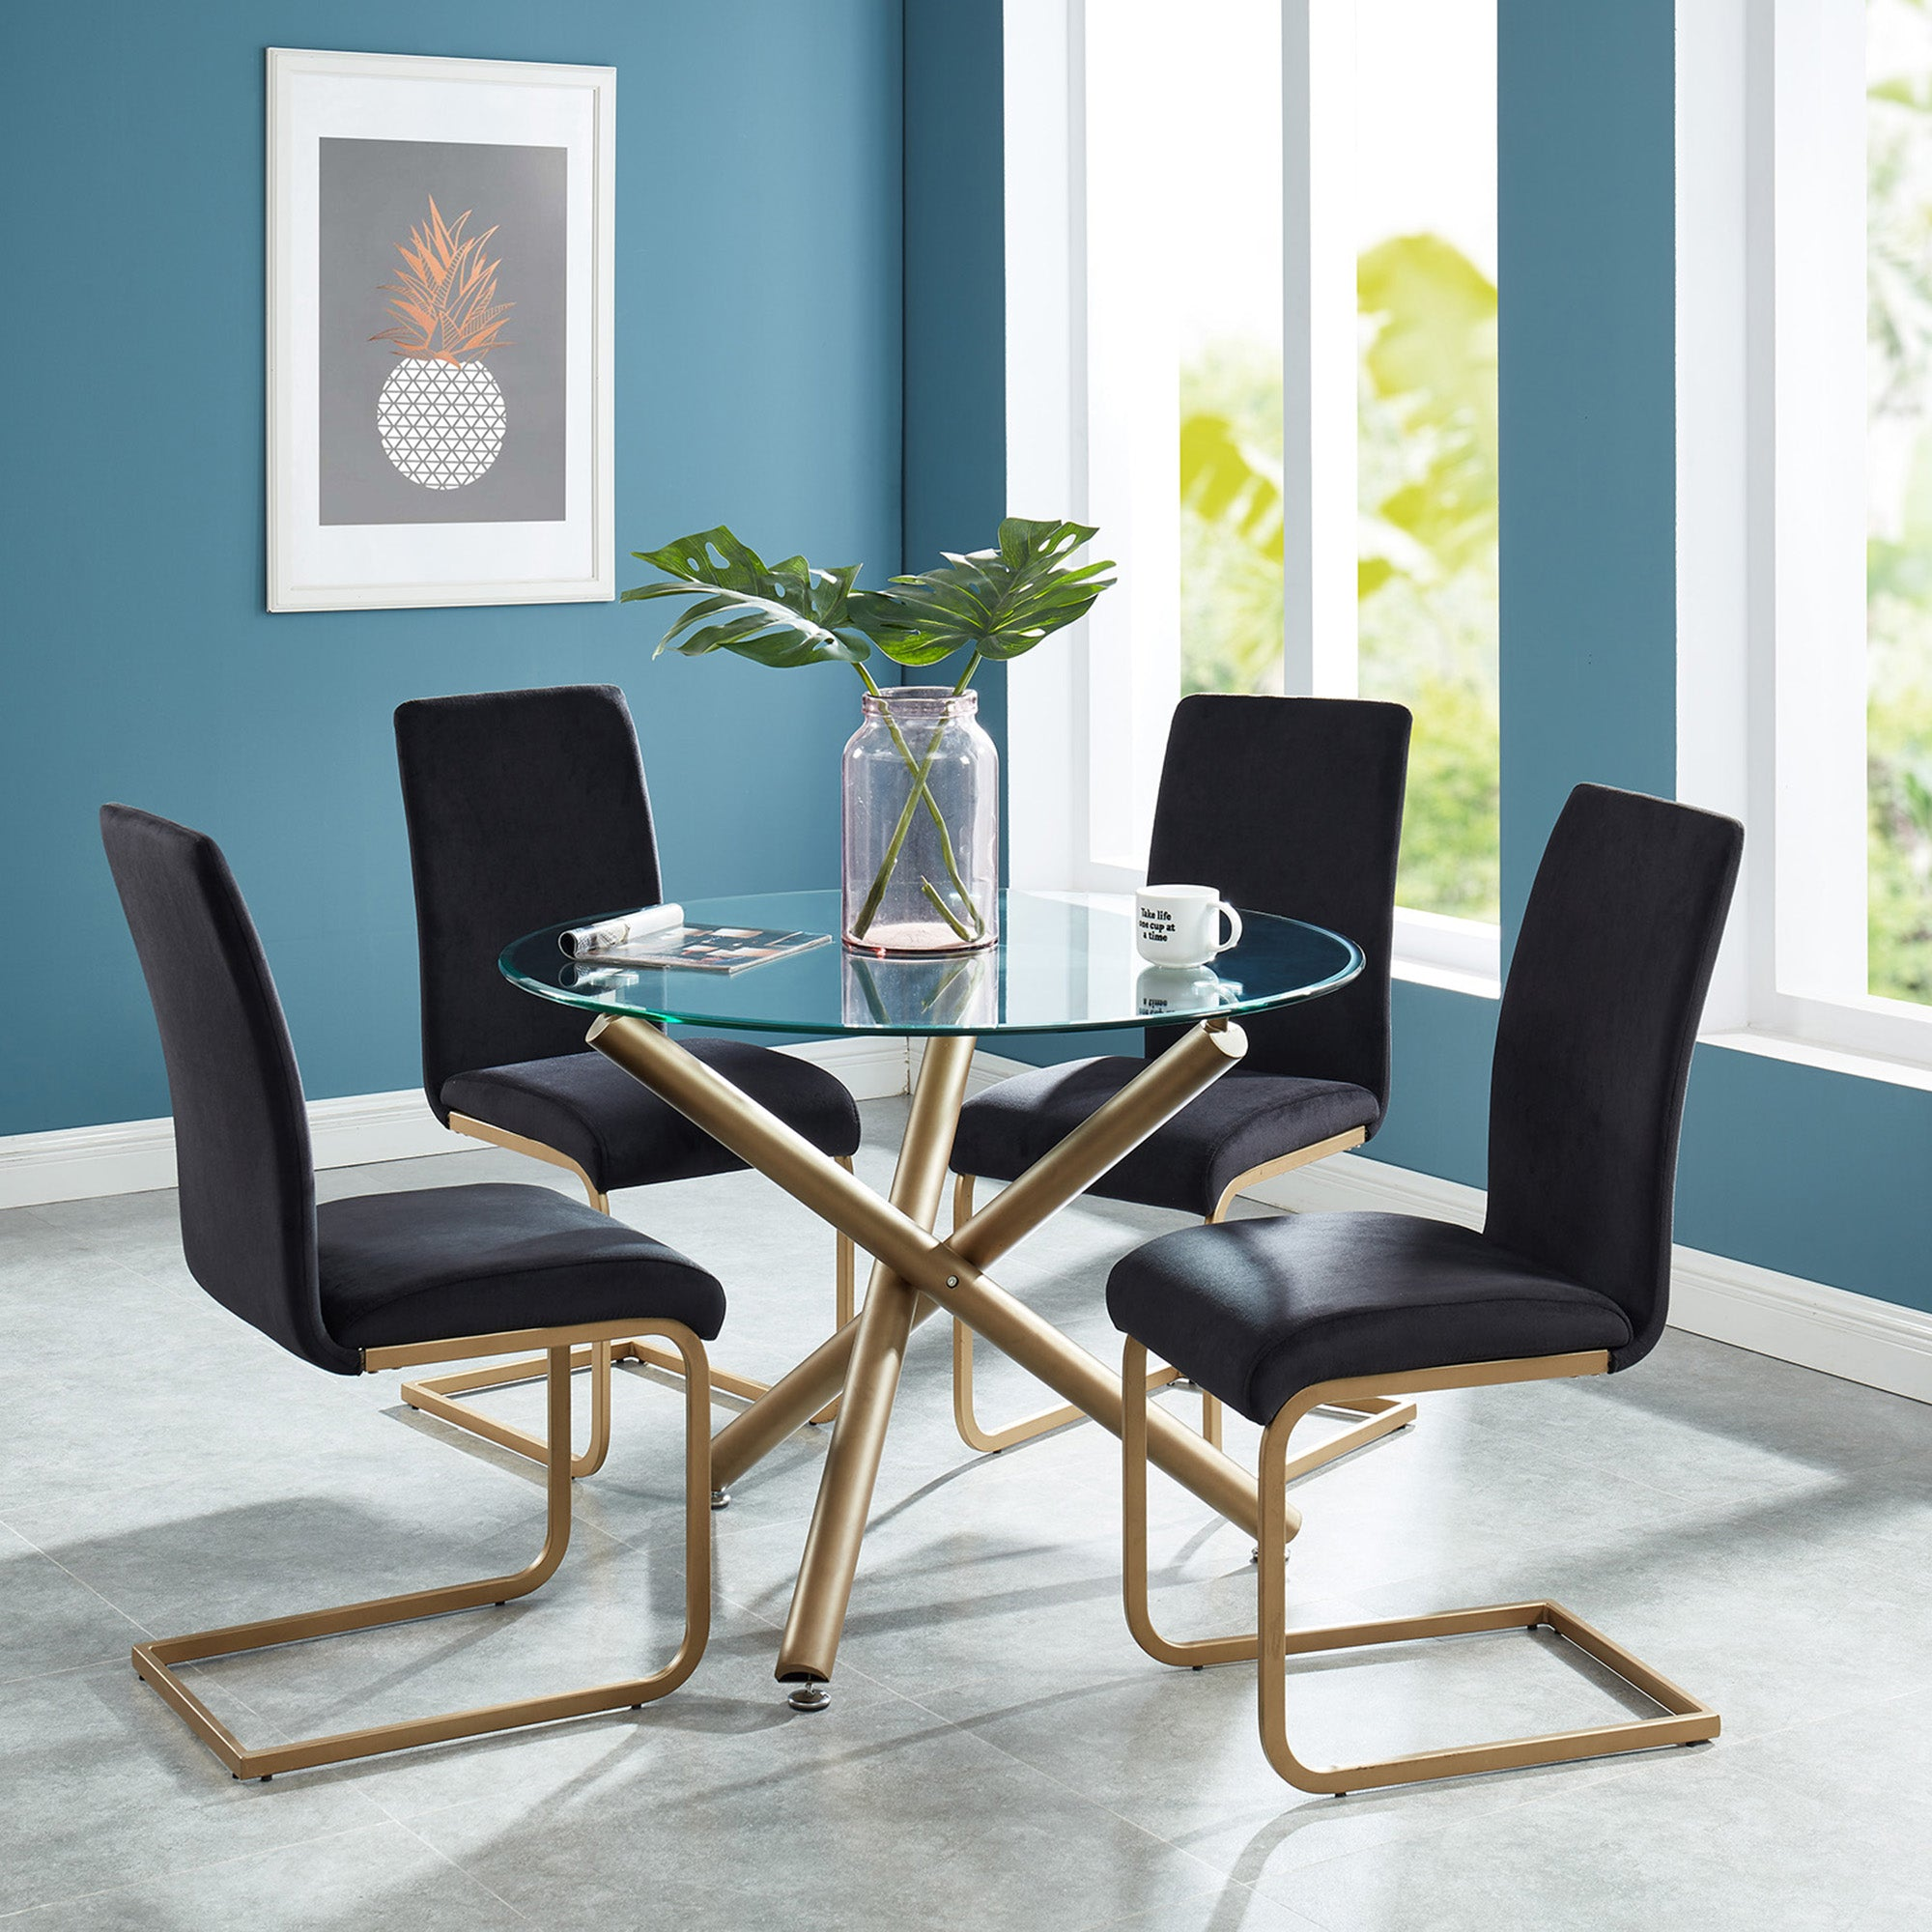 Sal / Mute 5 Pc Dining Set (Gold / Black)